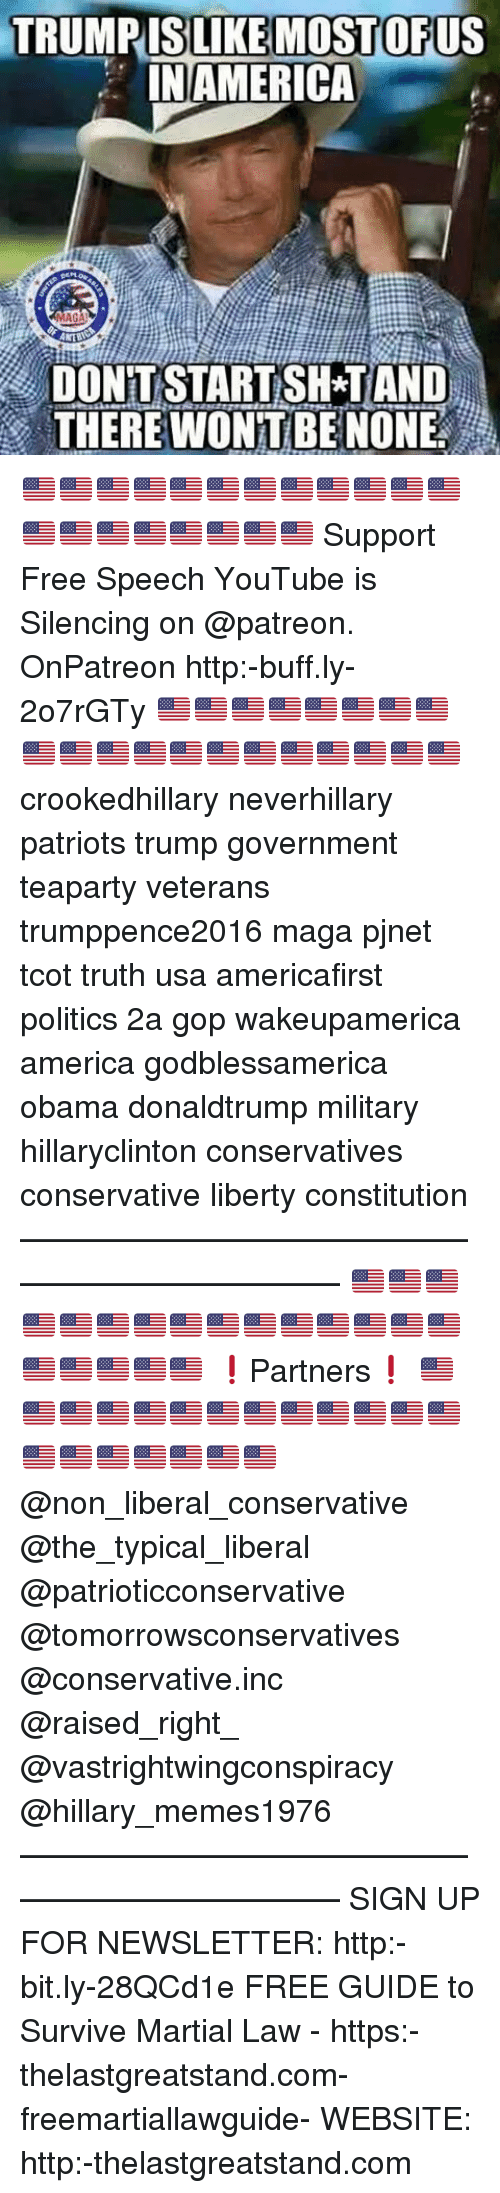 martial law: TRUMPISLIKE MOSTOFUS  IN AMERICA  DONT START SHAT AND  THERE WONTBE NONE 🇺🇸🇺🇸🇺🇸🇺🇸🇺🇸🇺🇸🇺🇸🇺🇸🇺🇸🇺🇸🇺🇸🇺🇸🇺🇸🇺🇸🇺🇸🇺🇸🇺🇸🇺🇸🇺🇸🇺🇸 Support Free Speech YouTube is Silencing on @patreon. OnPatreon http:-buff.ly-2o7rGTy 🇺🇸🇺🇸🇺🇸🇺🇸🇺🇸🇺🇸🇺🇸🇺🇸🇺🇸🇺🇸🇺🇸🇺🇸🇺🇸🇺🇸🇺🇸🇺🇸🇺🇸🇺🇸🇺🇸🇺🇸 crookedhillary neverhillary patriots trump government teaparty veterans trumppence2016 maga pjnet tcot truth usa americafirst politics 2a gop wakeupamerica america godblessamerica obama donaldtrump military hillaryclinton conservatives conservative liberty constitution ———————————————————————— 🇺🇸🇺🇸🇺🇸🇺🇸🇺🇸🇺🇸🇺🇸🇺🇸🇺🇸🇺🇸🇺🇸🇺🇸🇺🇸🇺🇸🇺🇸🇺🇸🇺🇸🇺🇸🇺🇸🇺🇸 ❗️Partners❗️ 🇺🇸🇺🇸🇺🇸🇺🇸🇺🇸🇺🇸🇺🇸🇺🇸🇺🇸🇺🇸🇺🇸🇺🇸🇺🇸🇺🇸🇺🇸🇺🇸🇺🇸🇺🇸🇺🇸🇺🇸 @non_liberal_conservative @the_typical_liberal @patrioticconservative @tomorrowsconservatives @conservative.inc @raised_right_ @vastrightwingconspiracy @hillary_memes1976 ———————————————————————— SIGN UP FOR NEWSLETTER: http:-bit.ly-28QCd1e FREE GUIDE to Survive Martial Law - https:-thelastgreatstand.com-freemartiallawguide- WEBSITE: http:-thelastgreatstand.com